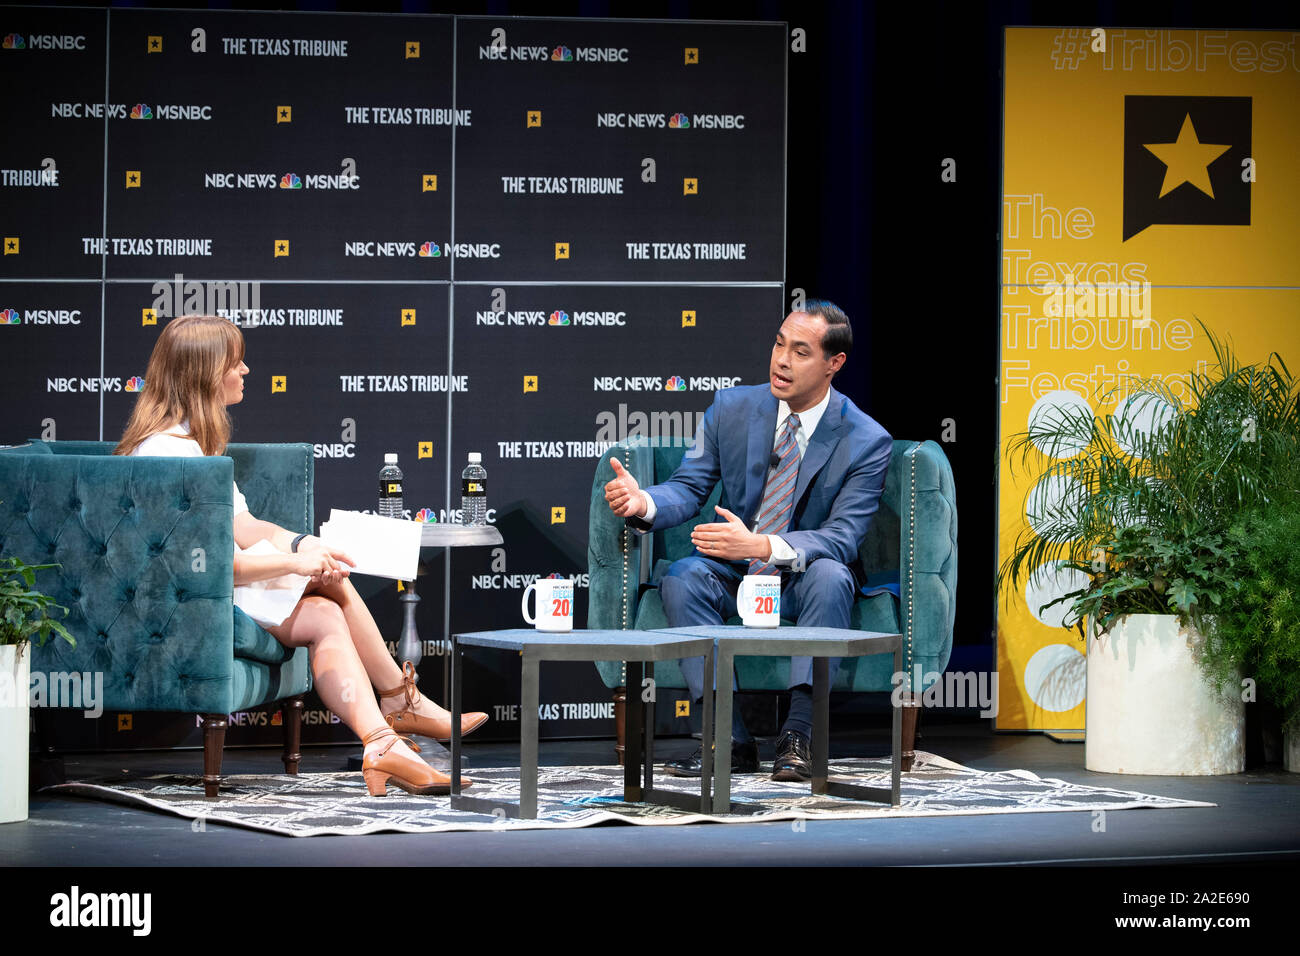 Austin, TX USA Sept. 28, 2019: Presidential candidate Julian Castro of San Antonio is interviewed by journalist Katie Tur of MSNBC at the Texas Tribune Festival in Austin. Castro, the only Hispanic Democratic hopeful, served in President Obama's cabinet as HUD Secretary. Stock Photo